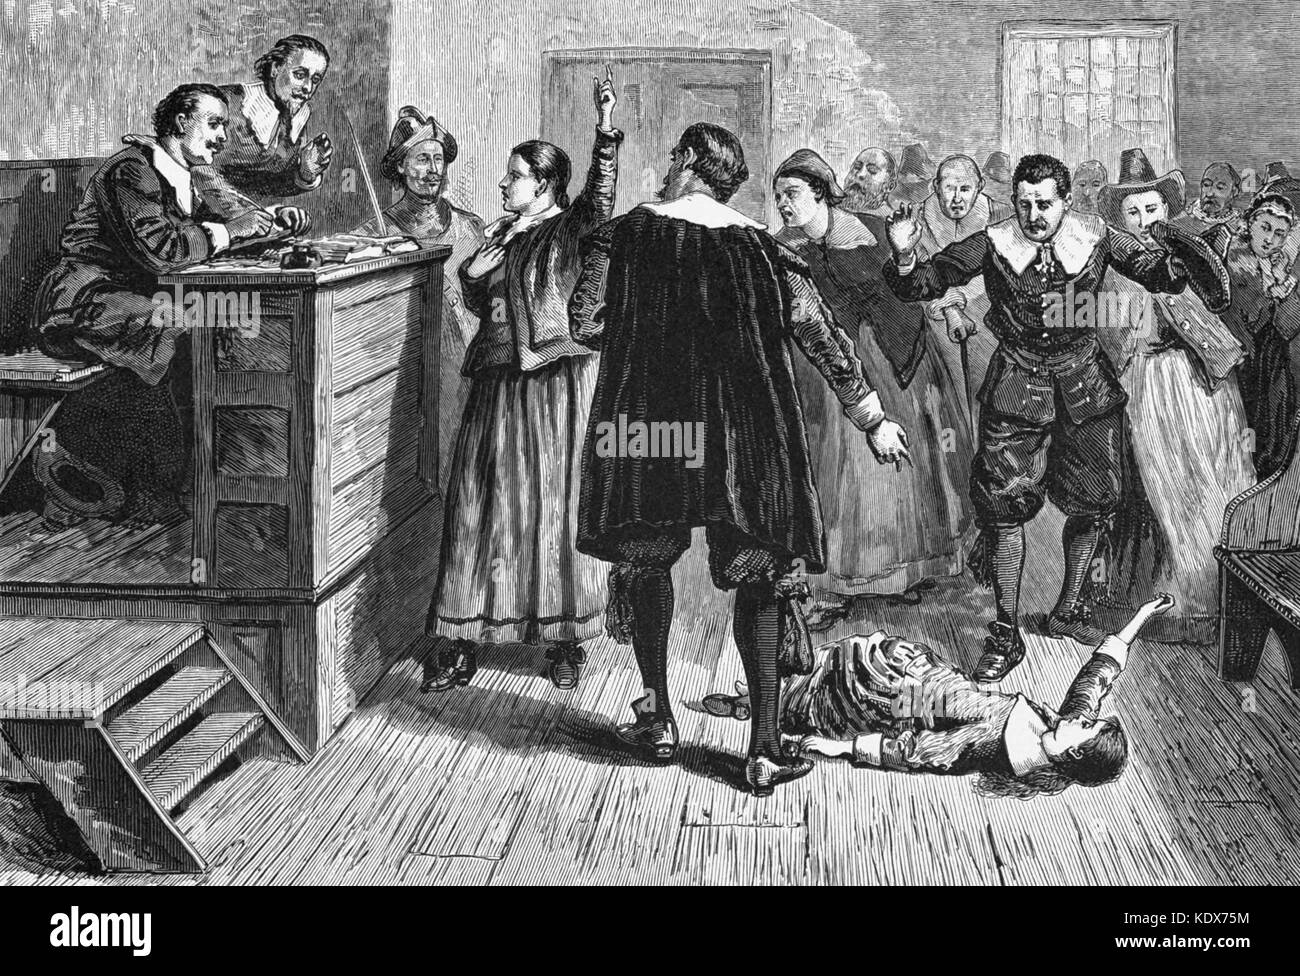 a study of the salem witch trials Salem witch trials essay the salem witch trials were a dark age in the american history more than 200 people were accused of practising the devil's magic and 20 were executed.